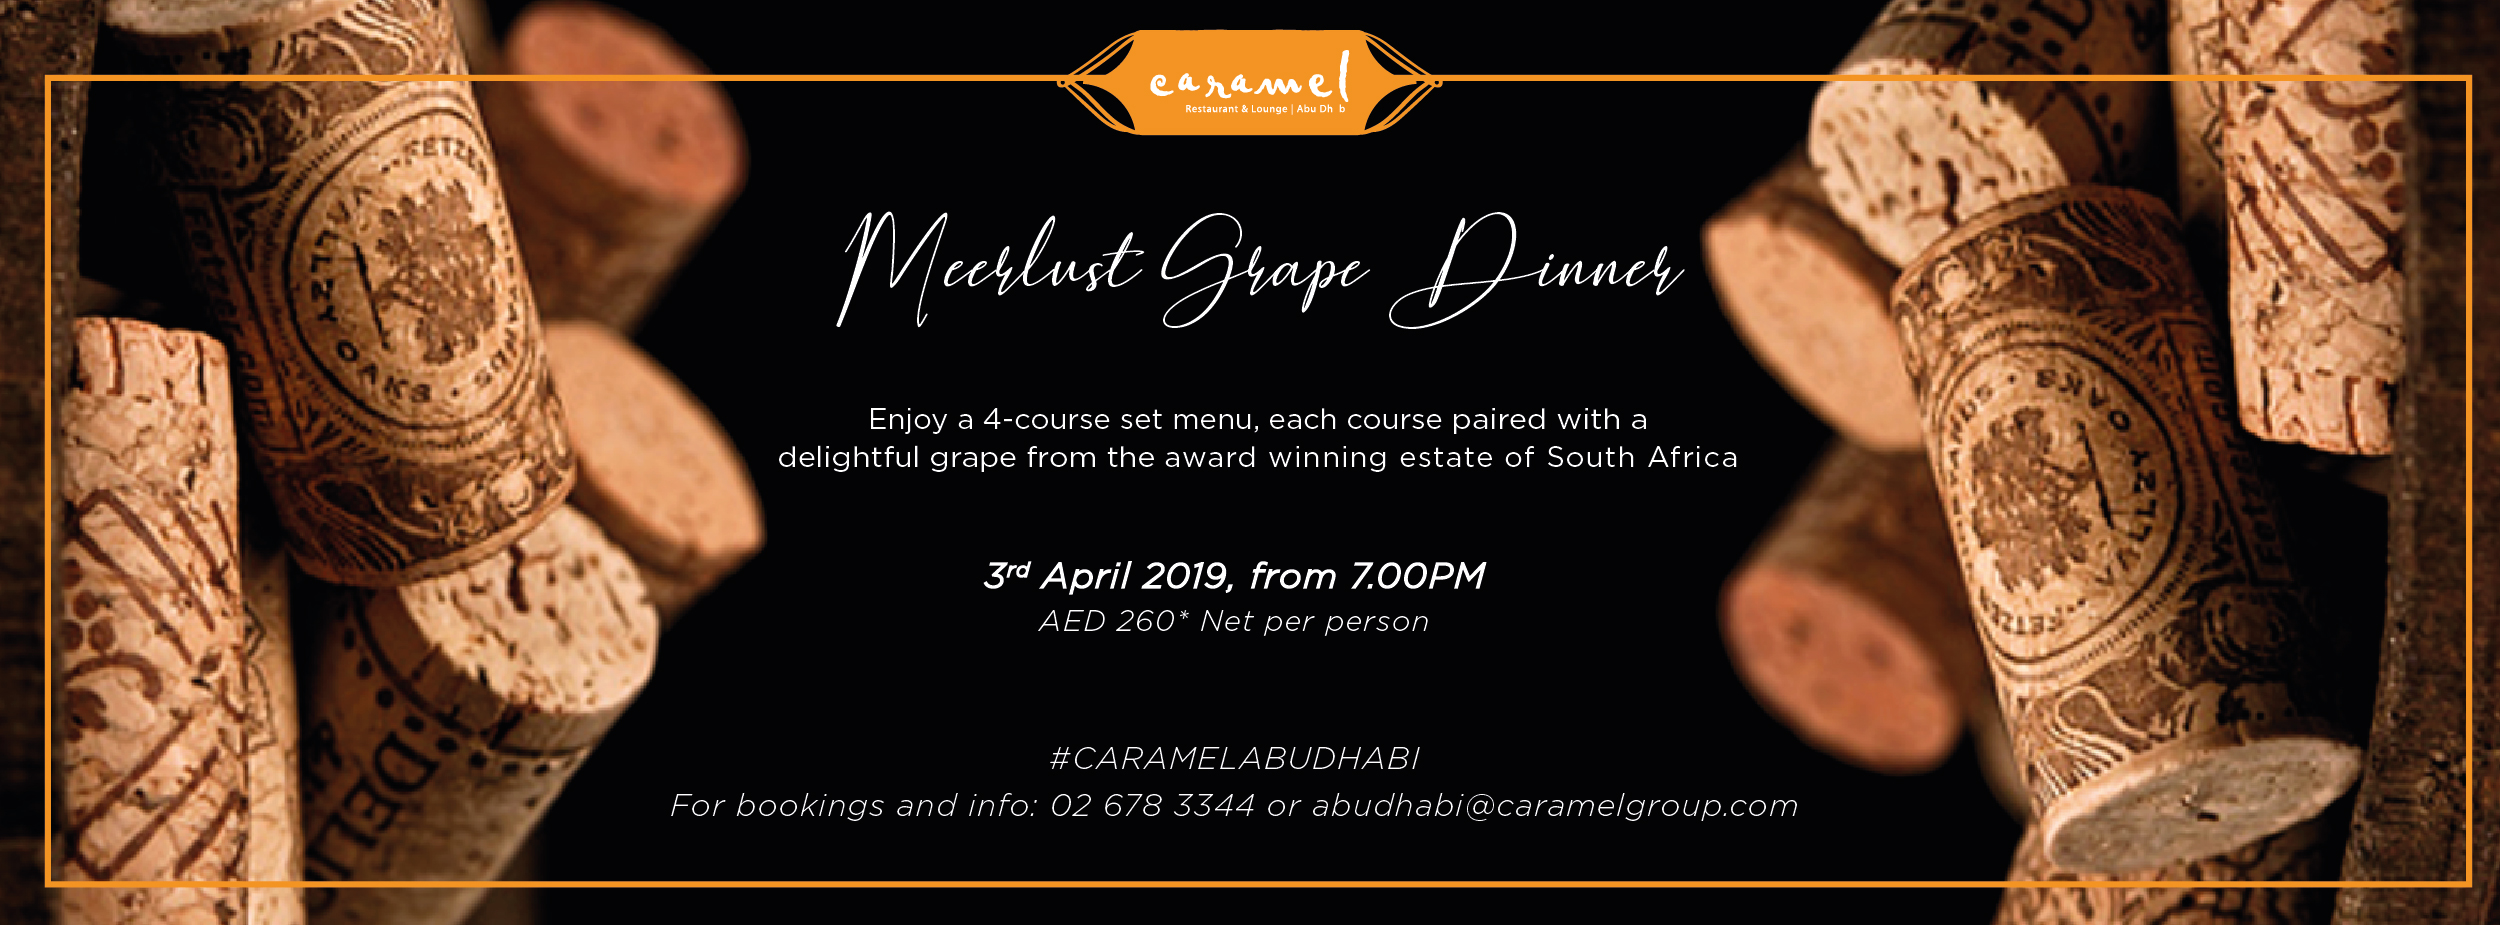 Meerlust Grape Dinner @ Caramel Abu Dhabi